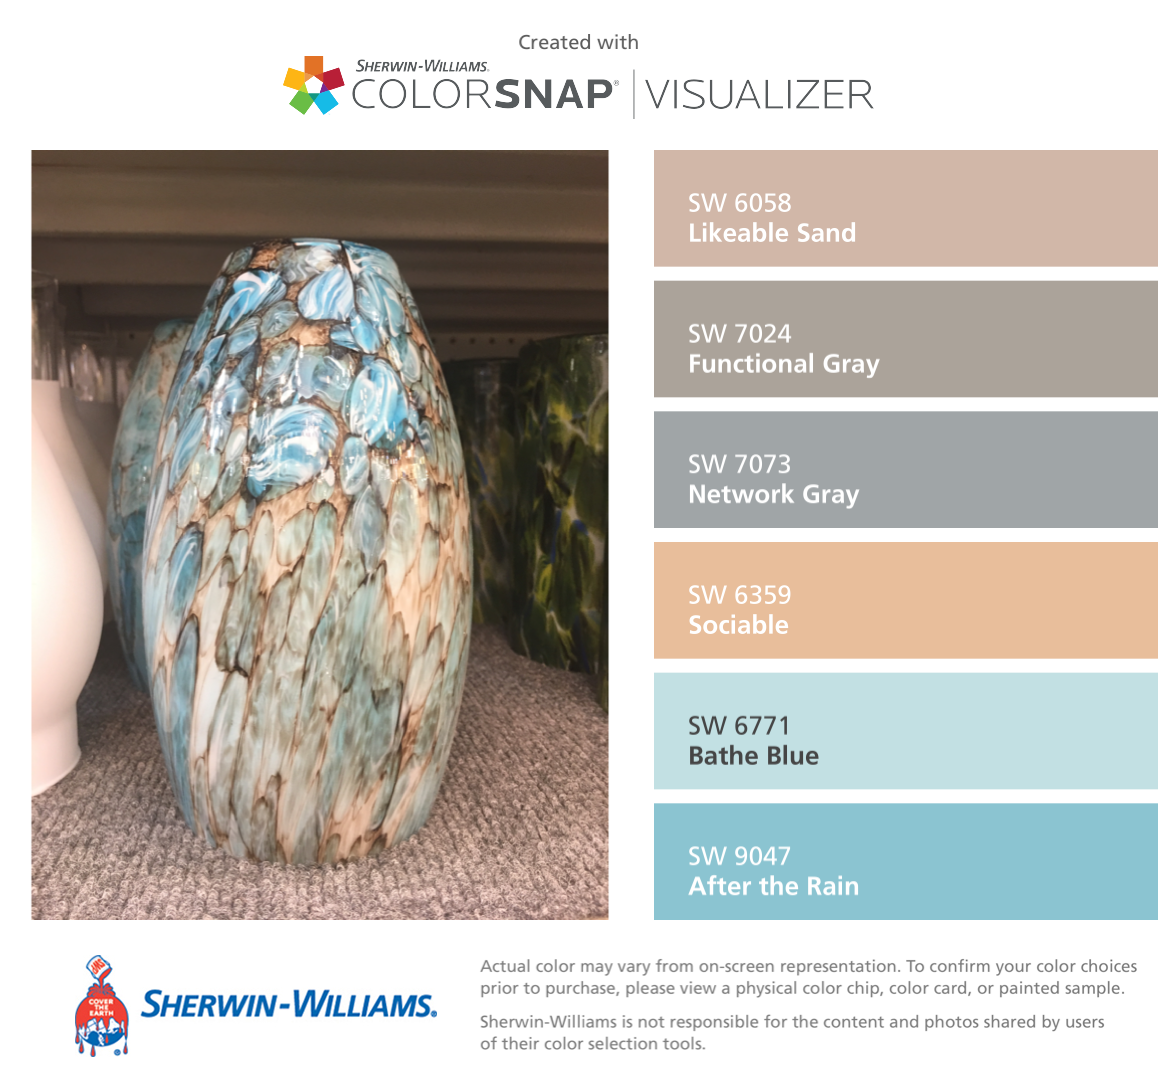 I found these colors with ColorSnap Visualizer for iPhone by Sherwin-Williams: Likeable Sand (SW 6058), Functional Gray (SW 7024), Network Gray (SW 7073), Sociable (SW 6359), Bathe Blue (SW 6771), After the Rain (SW 9047).